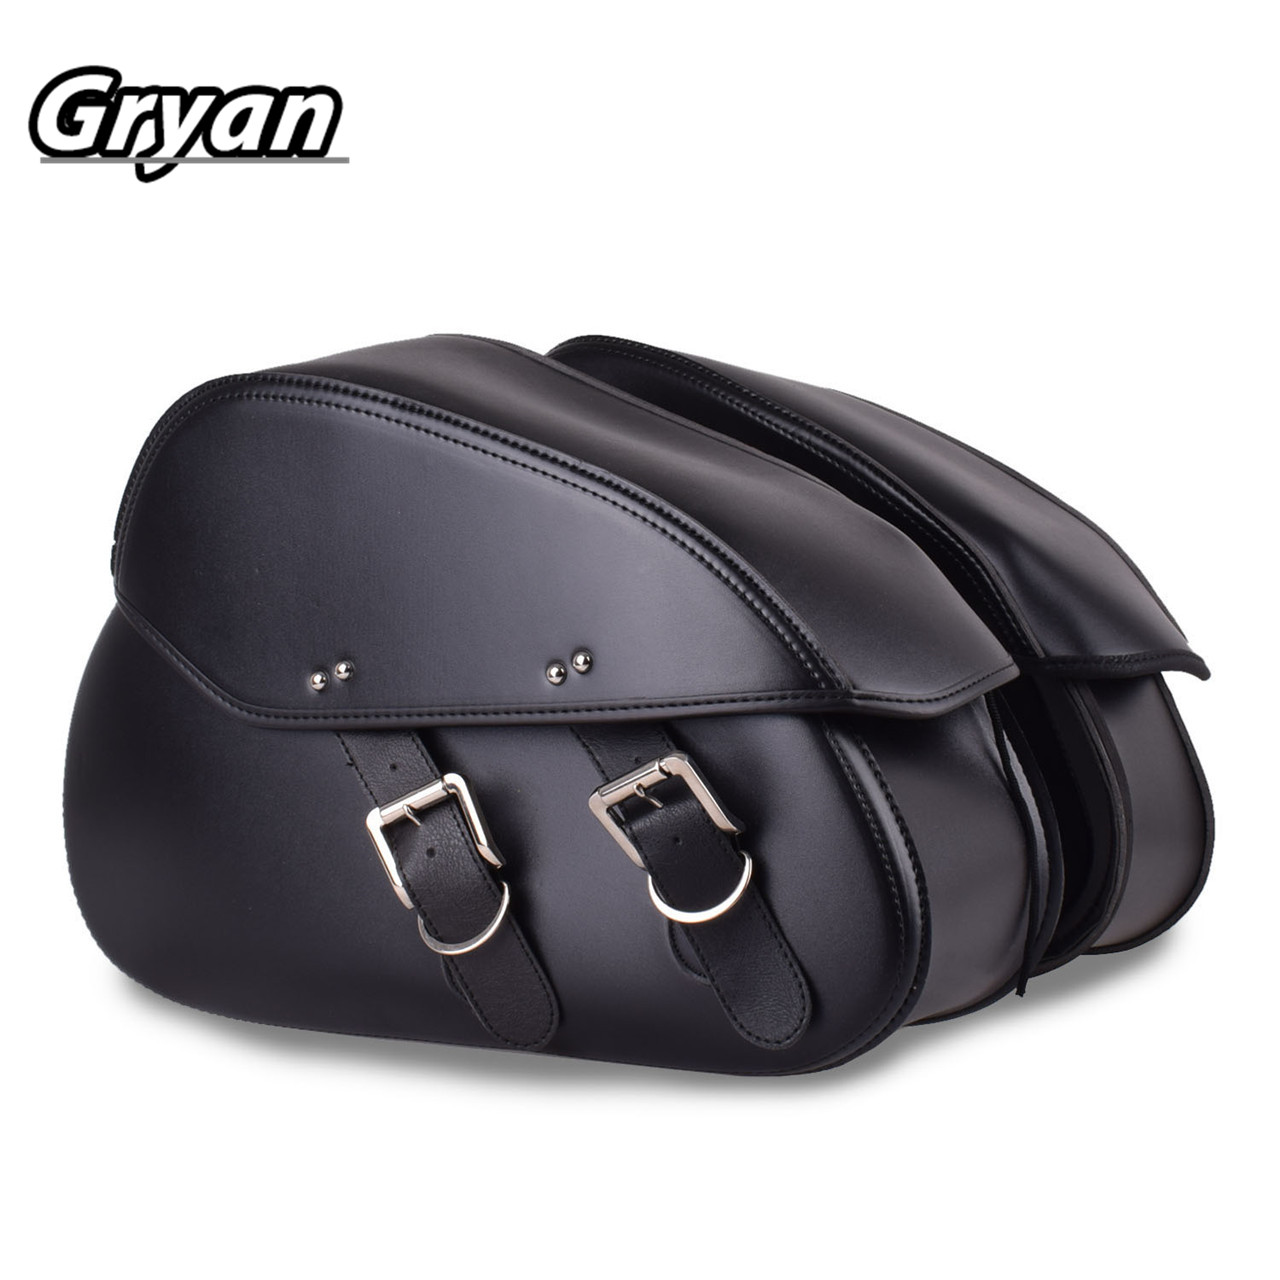 High Capacity Motorcycle Saddlebag leather motorcycle bag For Harley Sportster XL 883 XL 1200 For BMW R1200GS outdoor Bags mtsooning timing cover and 1 derby cover for harley davidson xlh 883 sportster 1986 2004 xl 883 sportster custom 1998 2008 883l